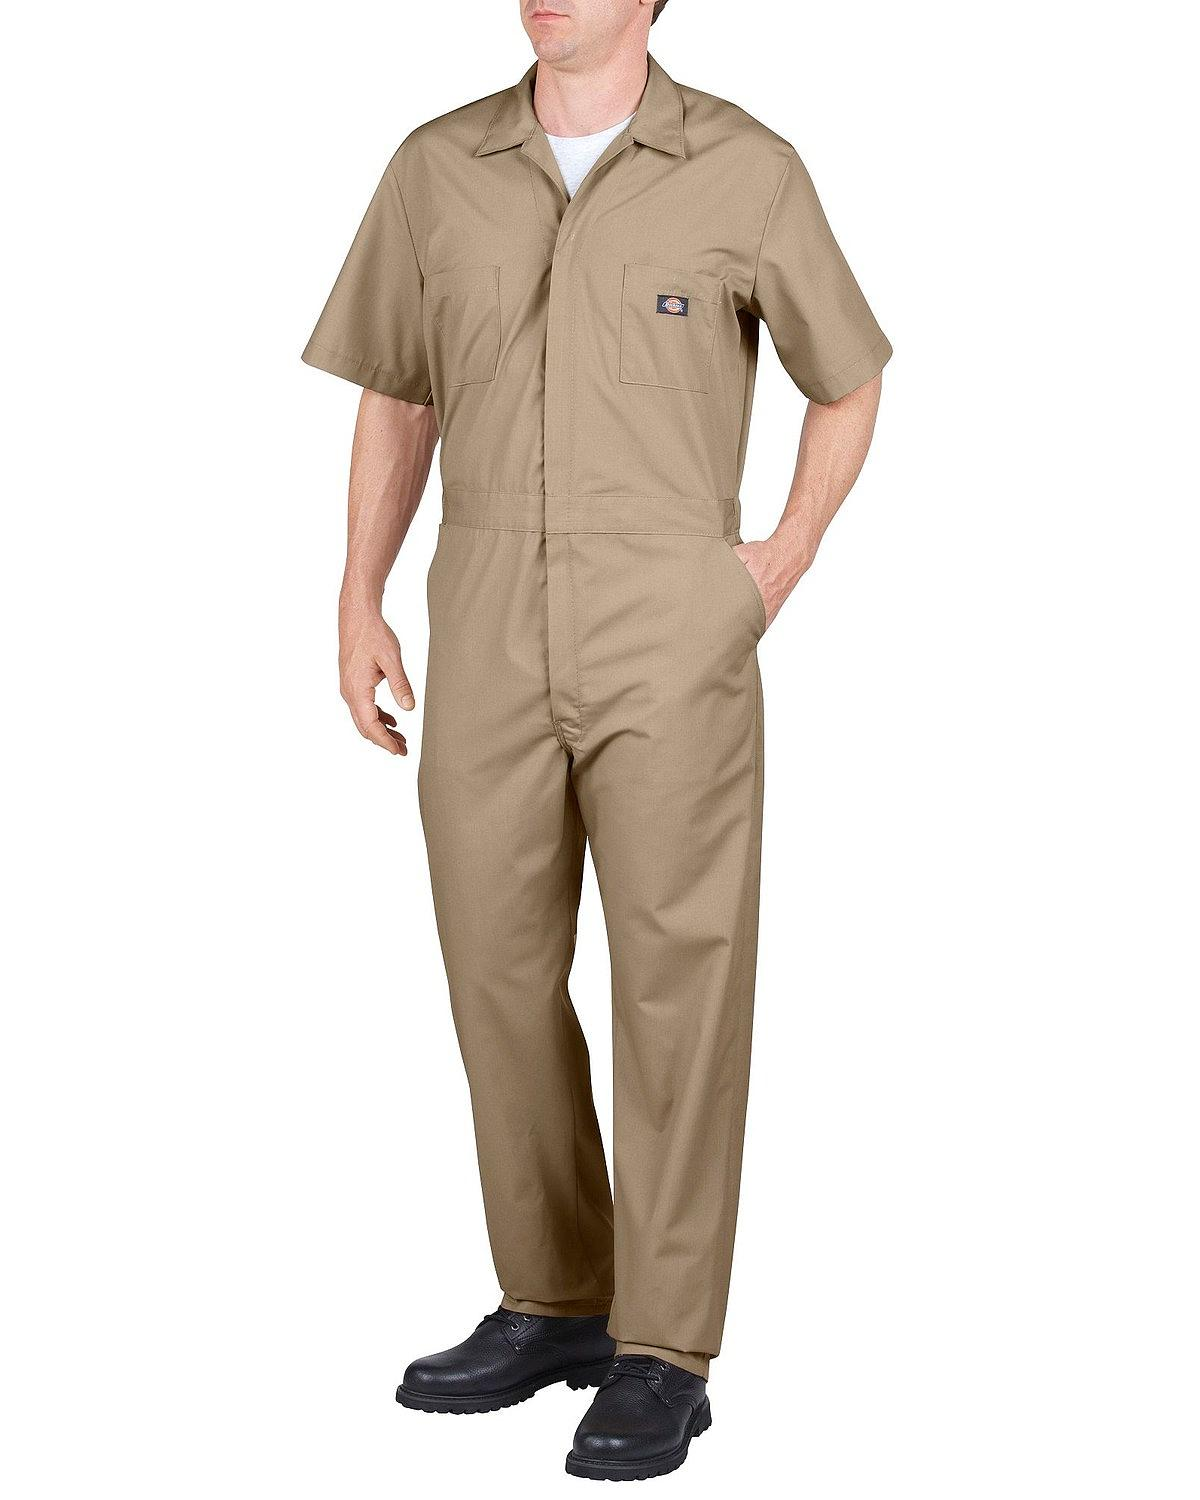 Find great deals on eBay for tall mens coveralls. Shop with confidence.